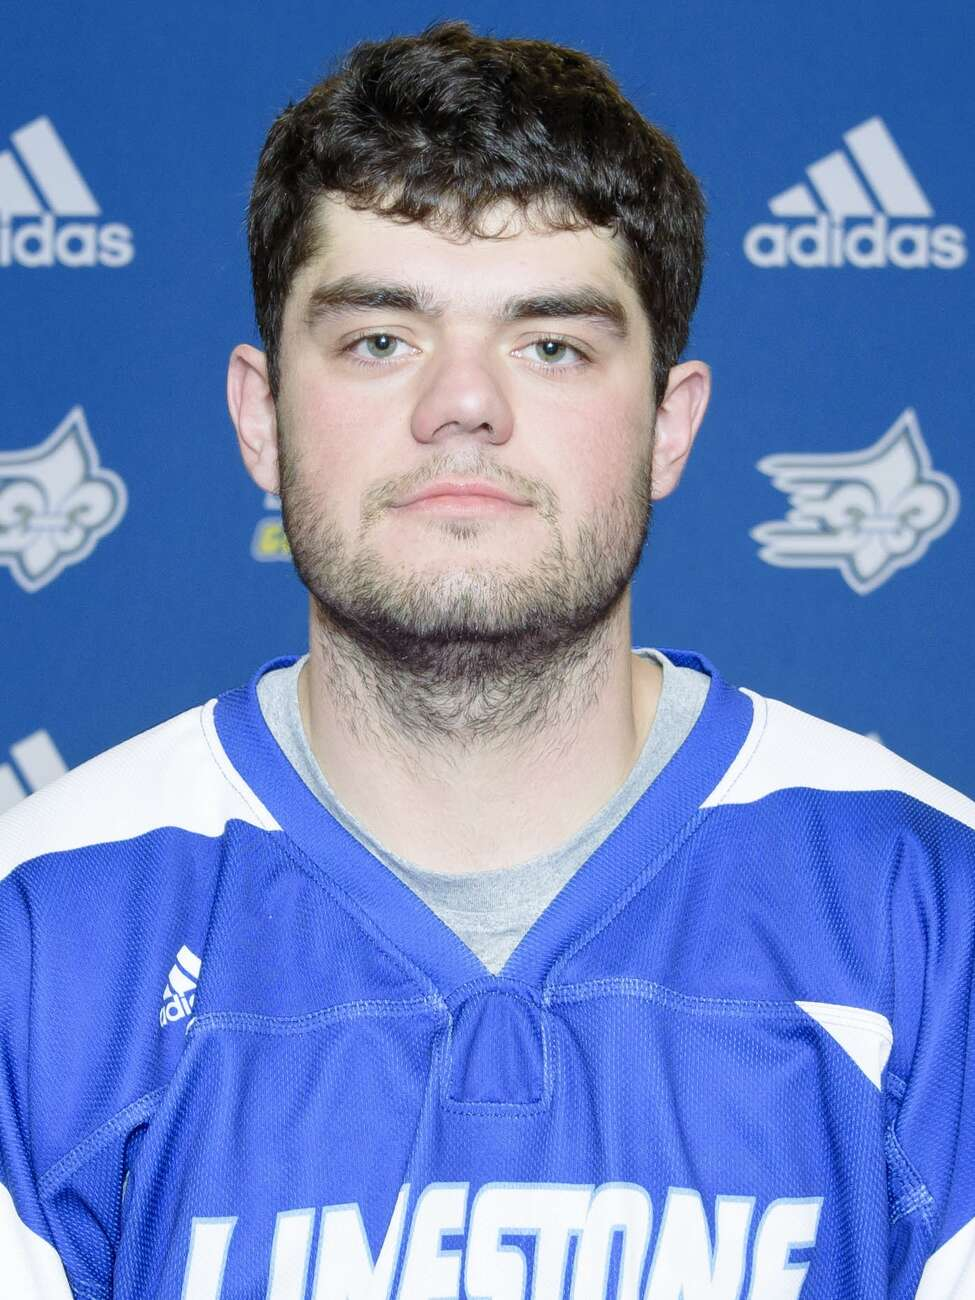 Coltin Moseman of Malta plays for the Limestone men's lacrosse team. Courtesy Stacey Wylie